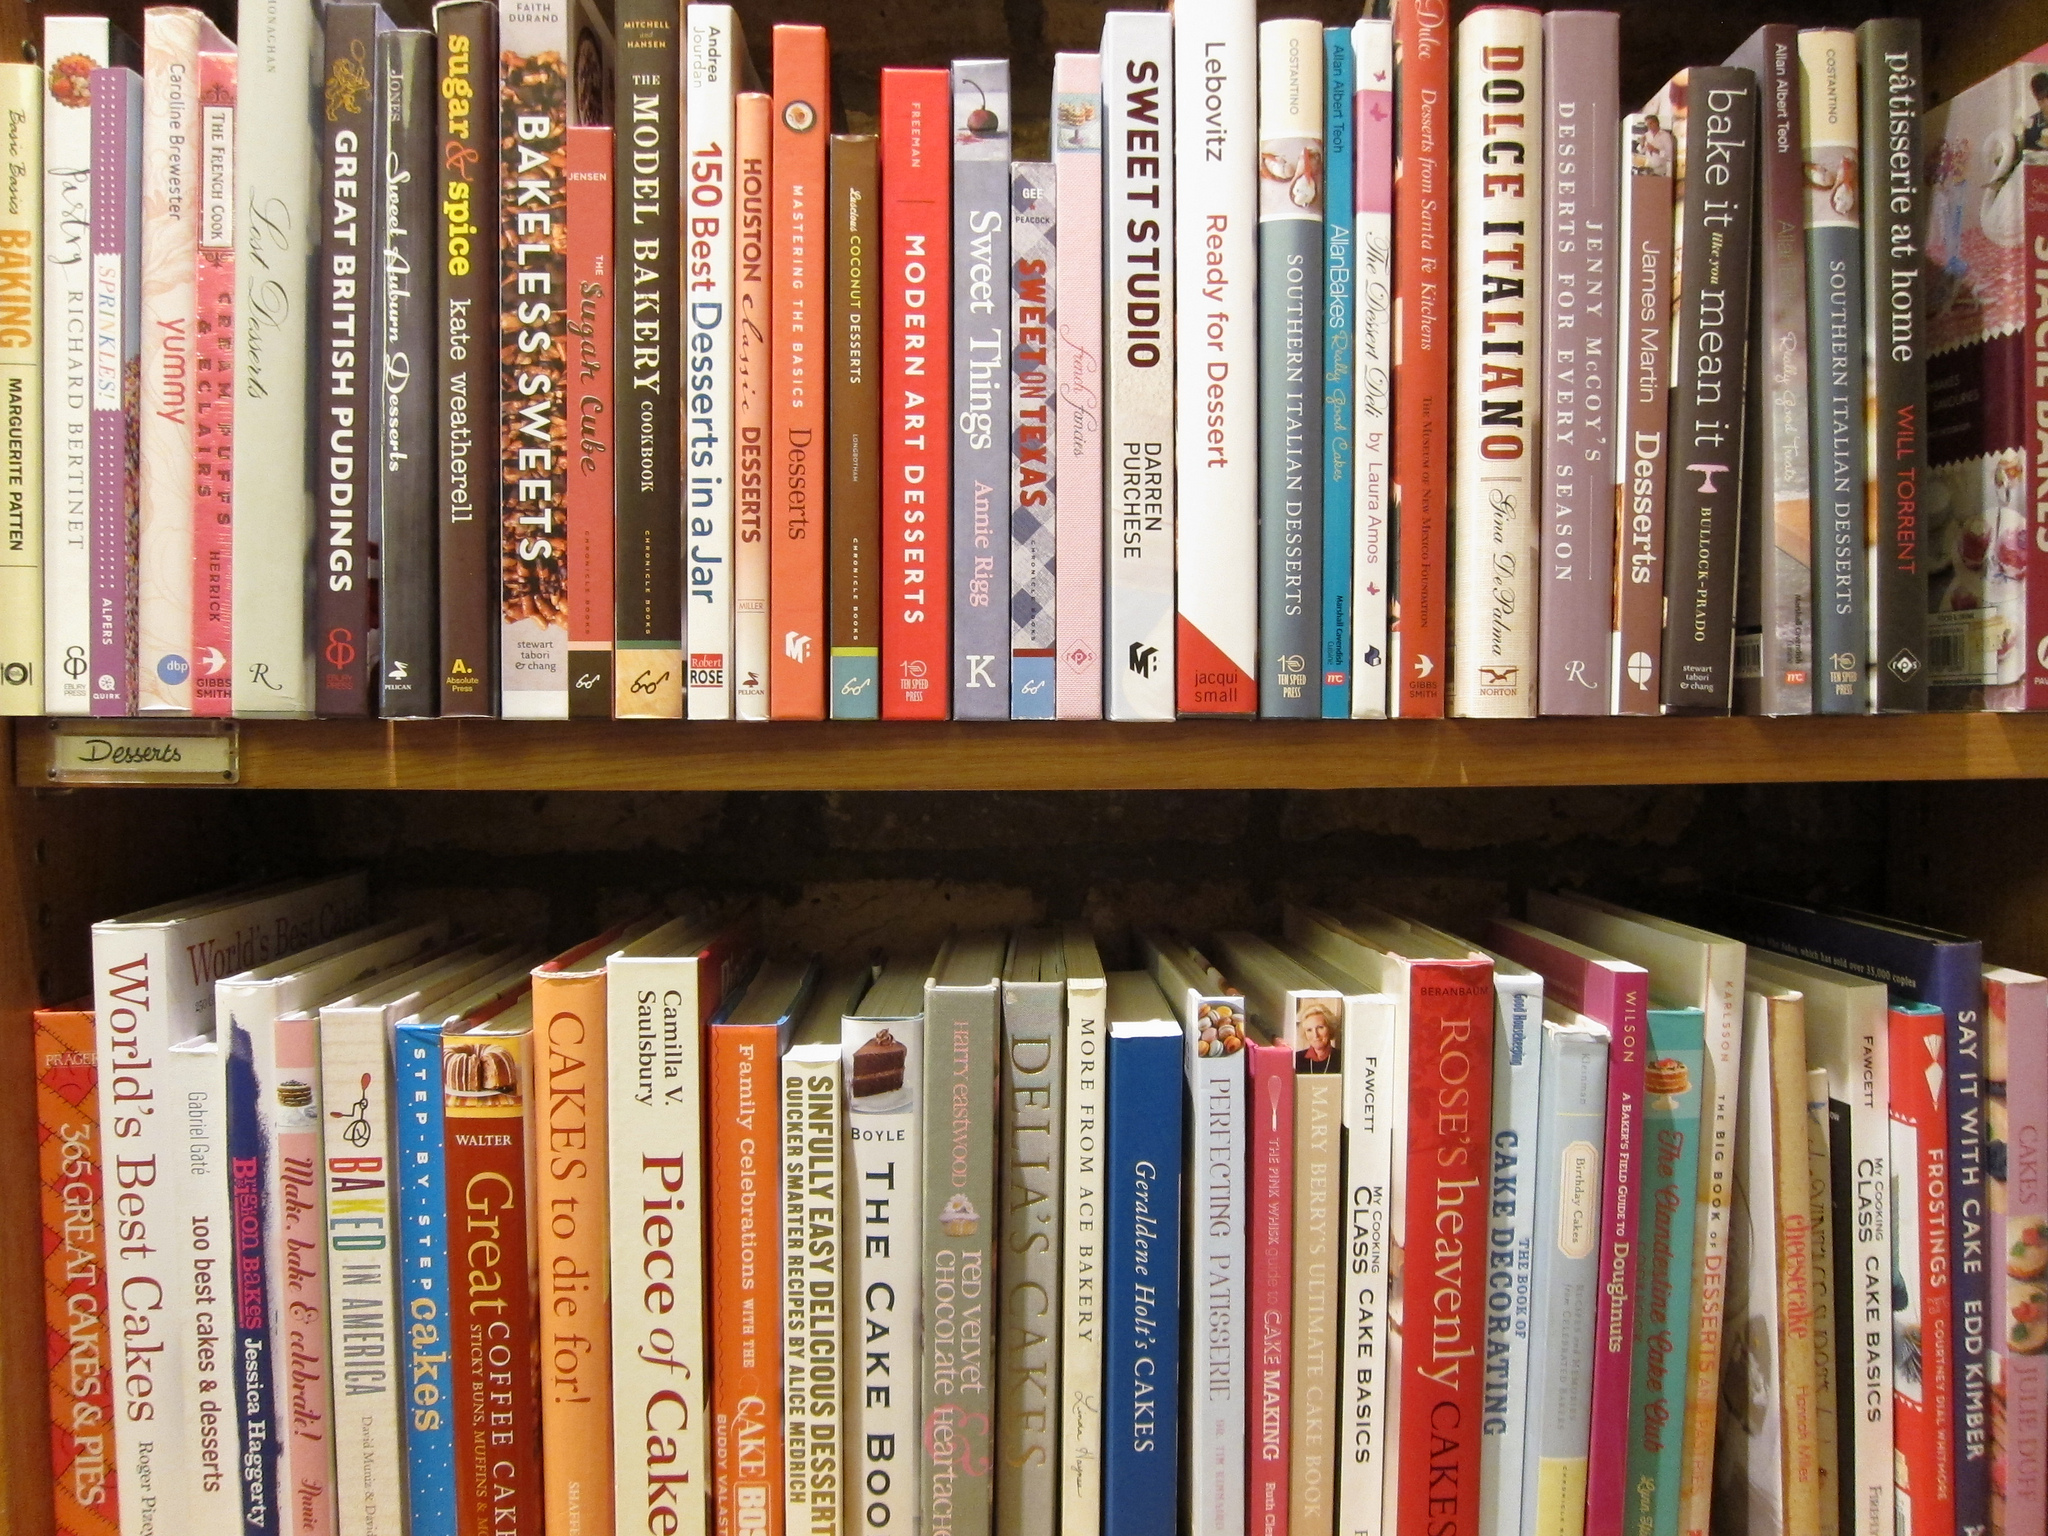 Plenty Of Cooking Books To Browse Through